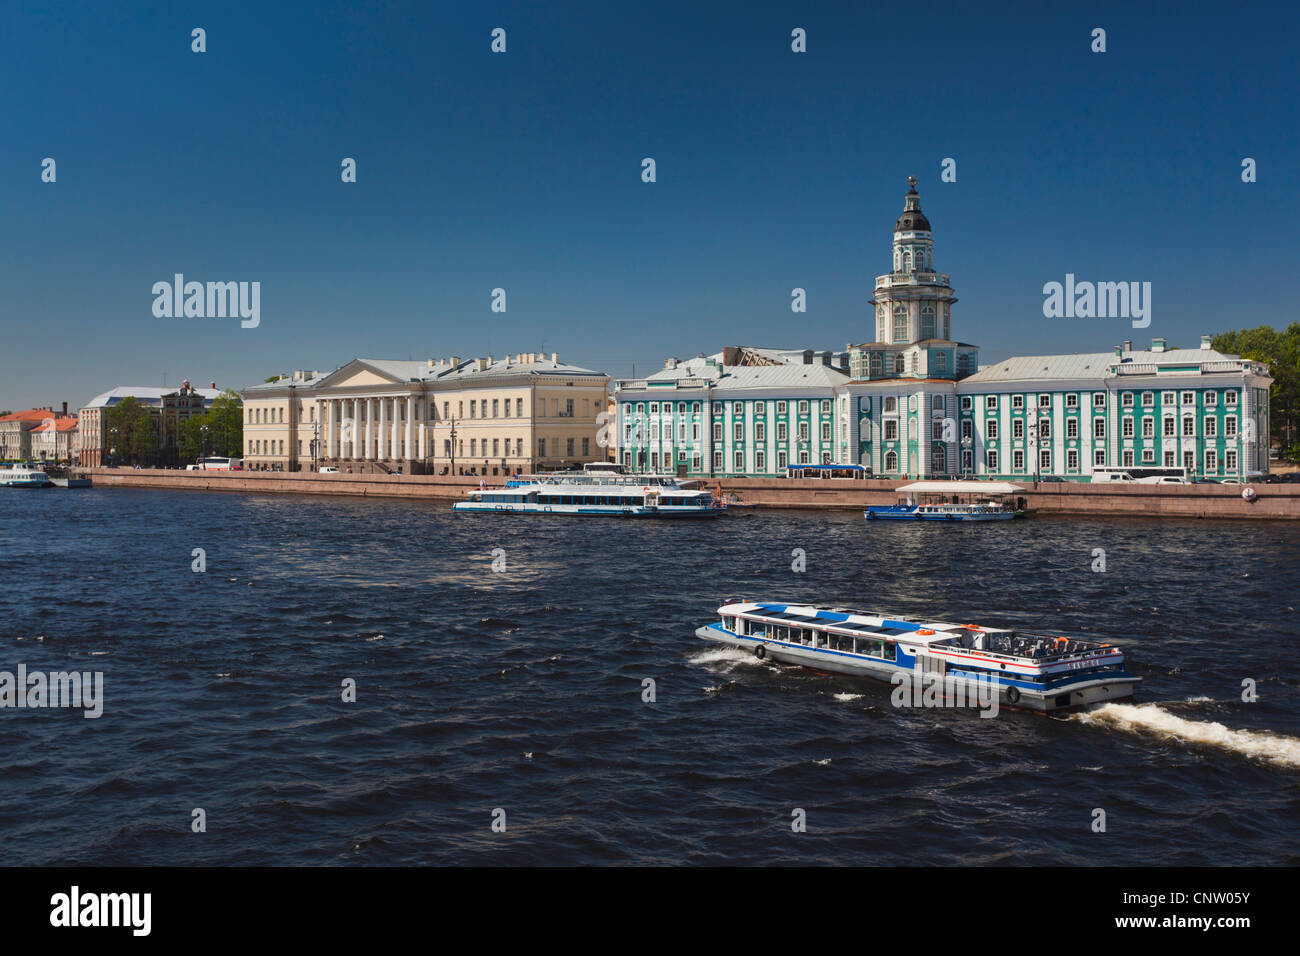 Russia, Saint Petersburg, Center, Kunstkamera Museum with Neva River tour boat - Stock Image